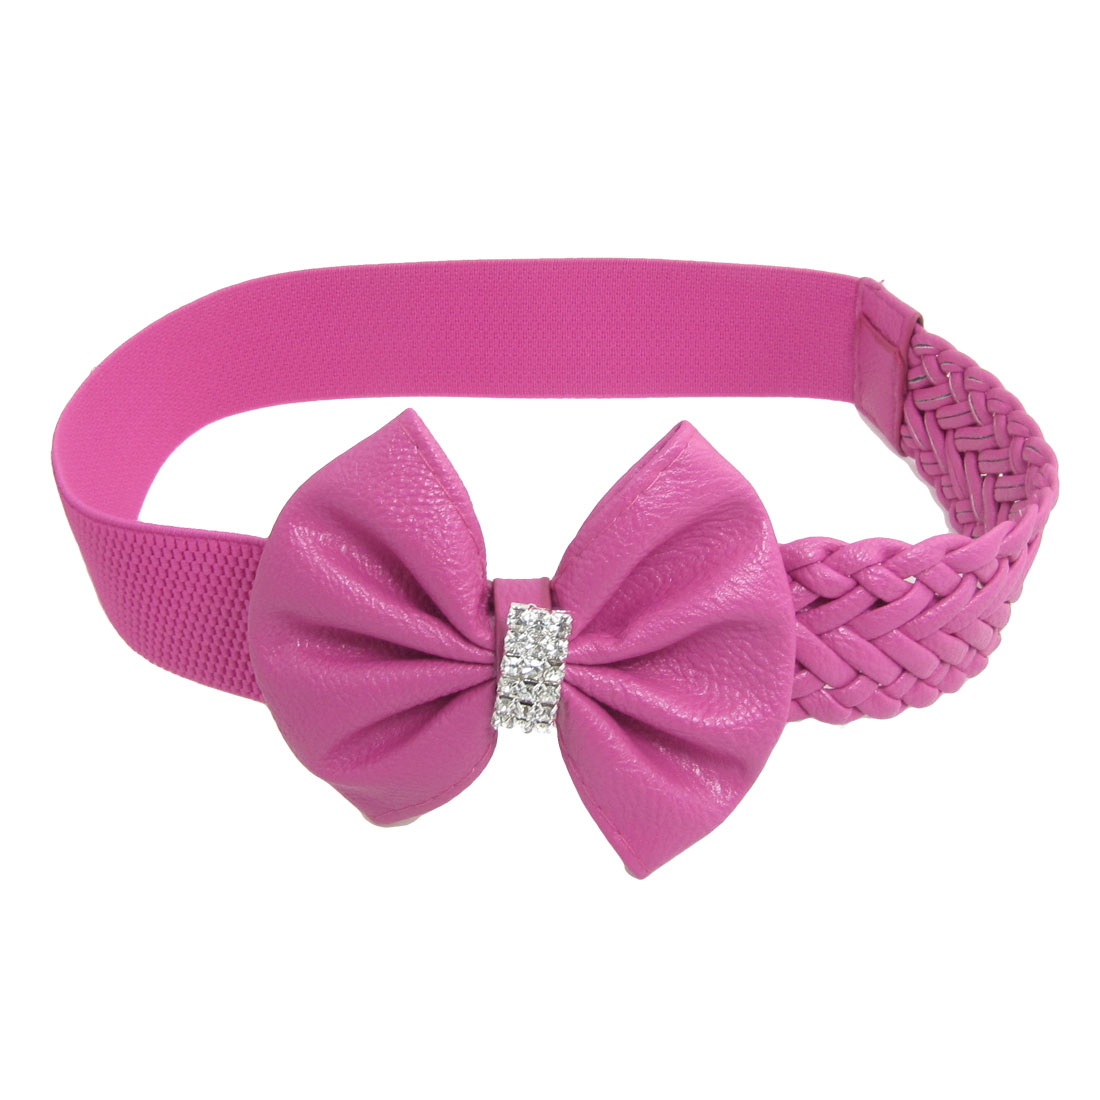 Faux Leather Bowknot Accent Stretchy Waist Belt Fuchsia for Lady